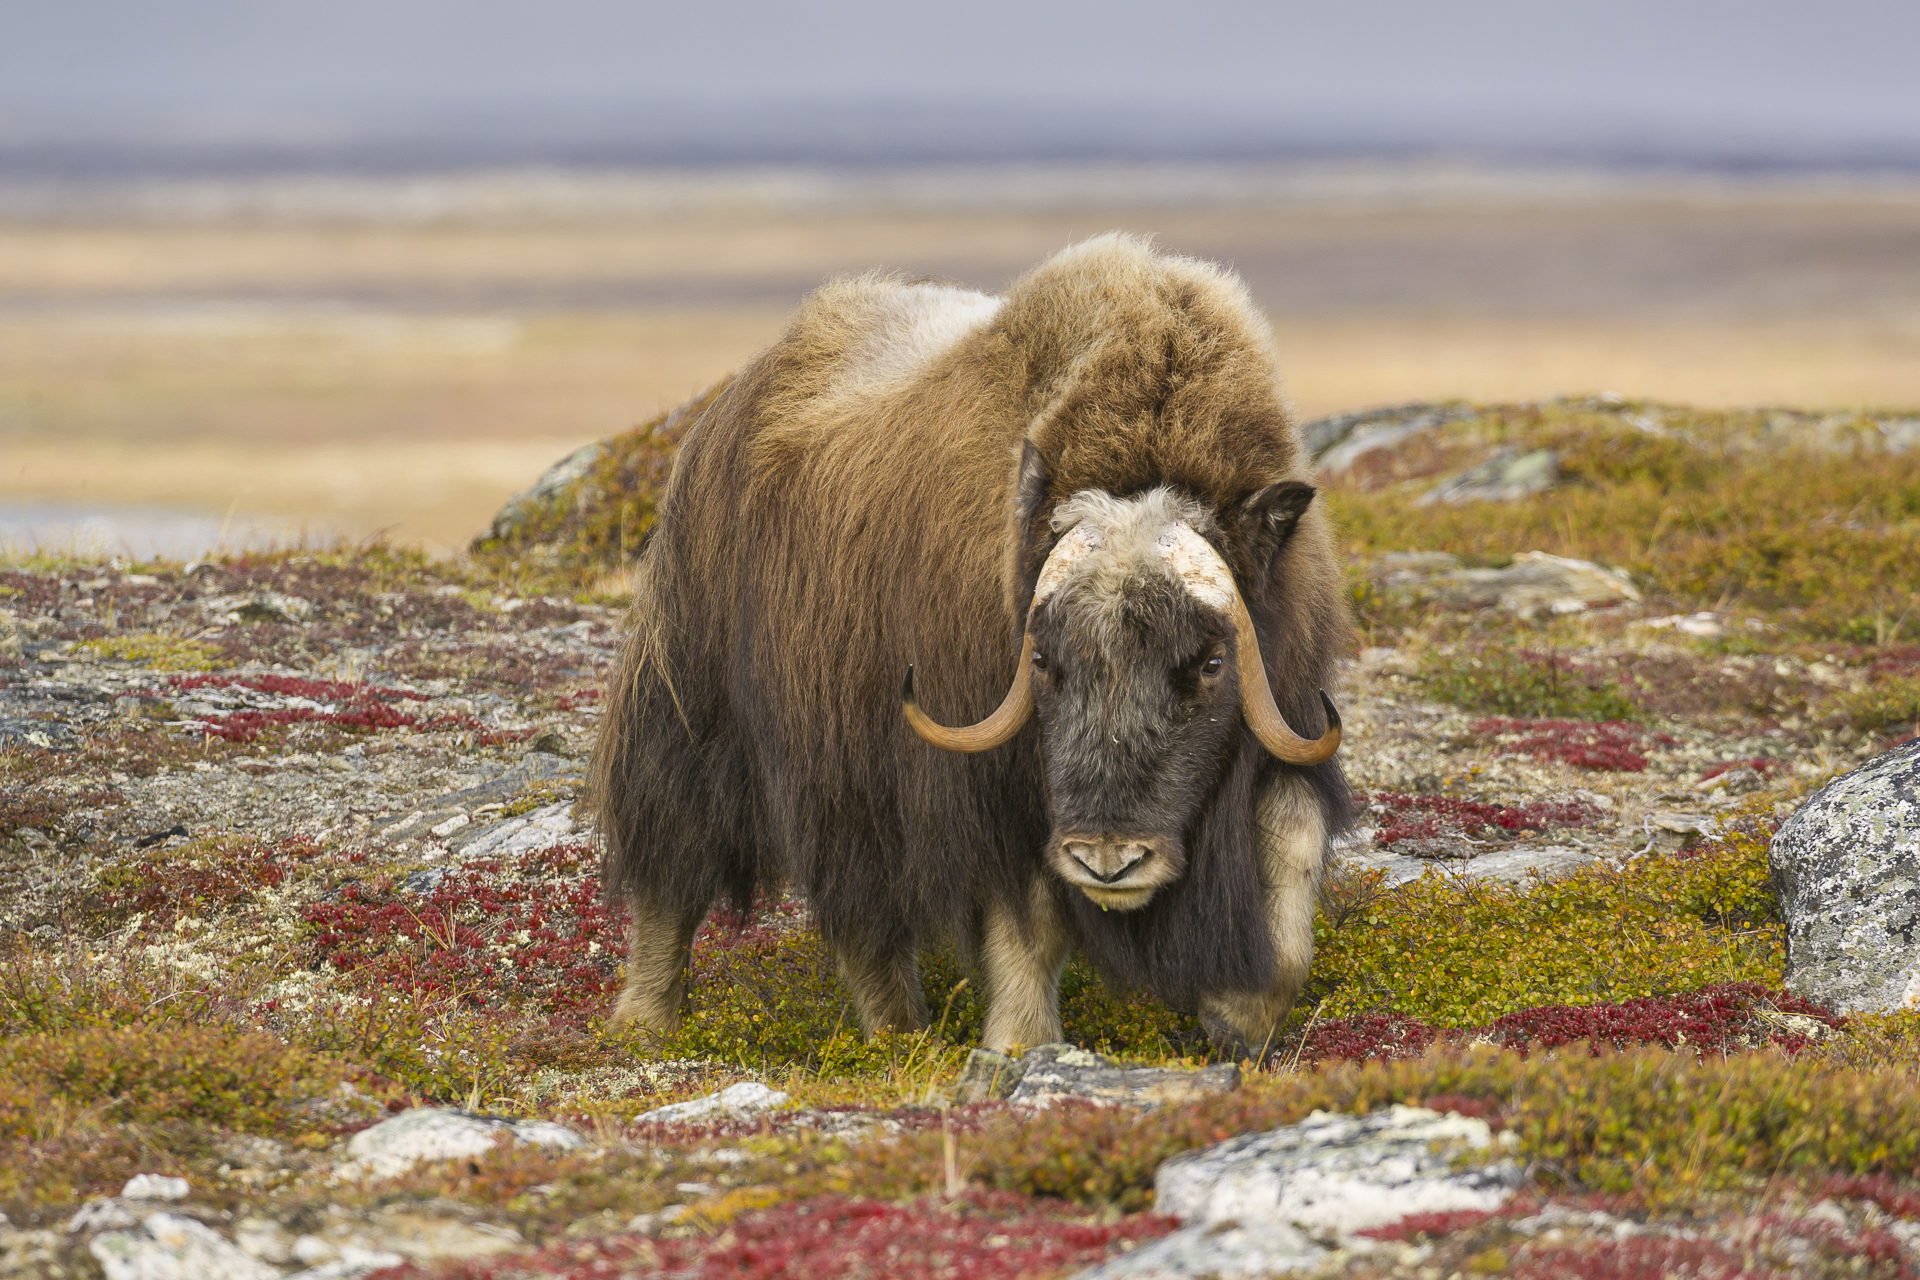 Bull muskox and tundra in fall colors